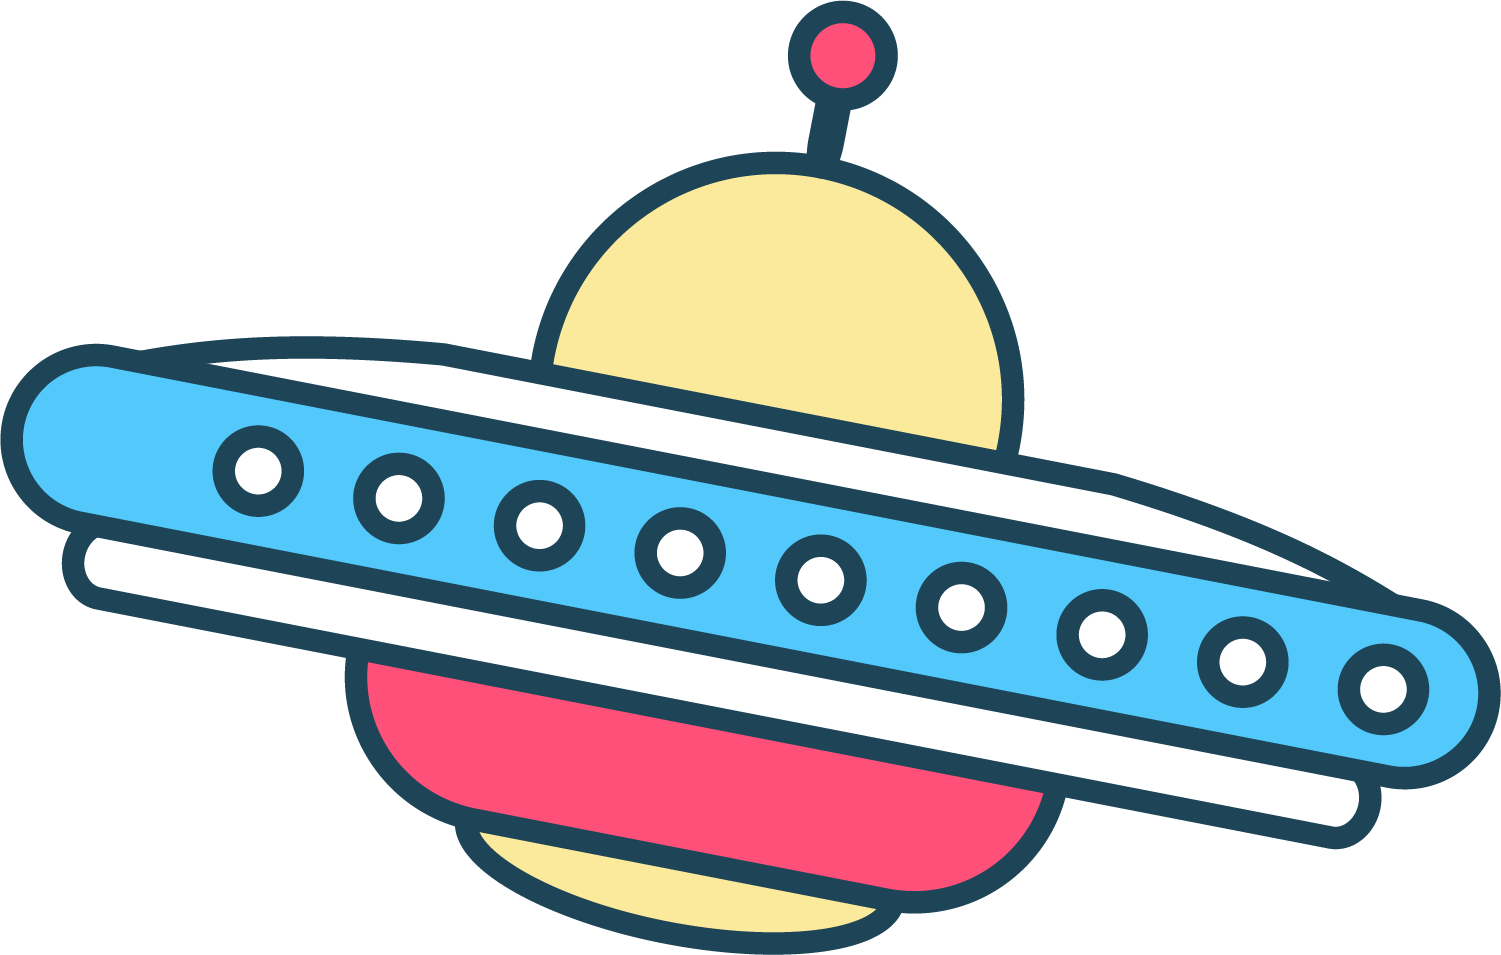 Vector ufo hand drawn. Drawing unidentified flying object